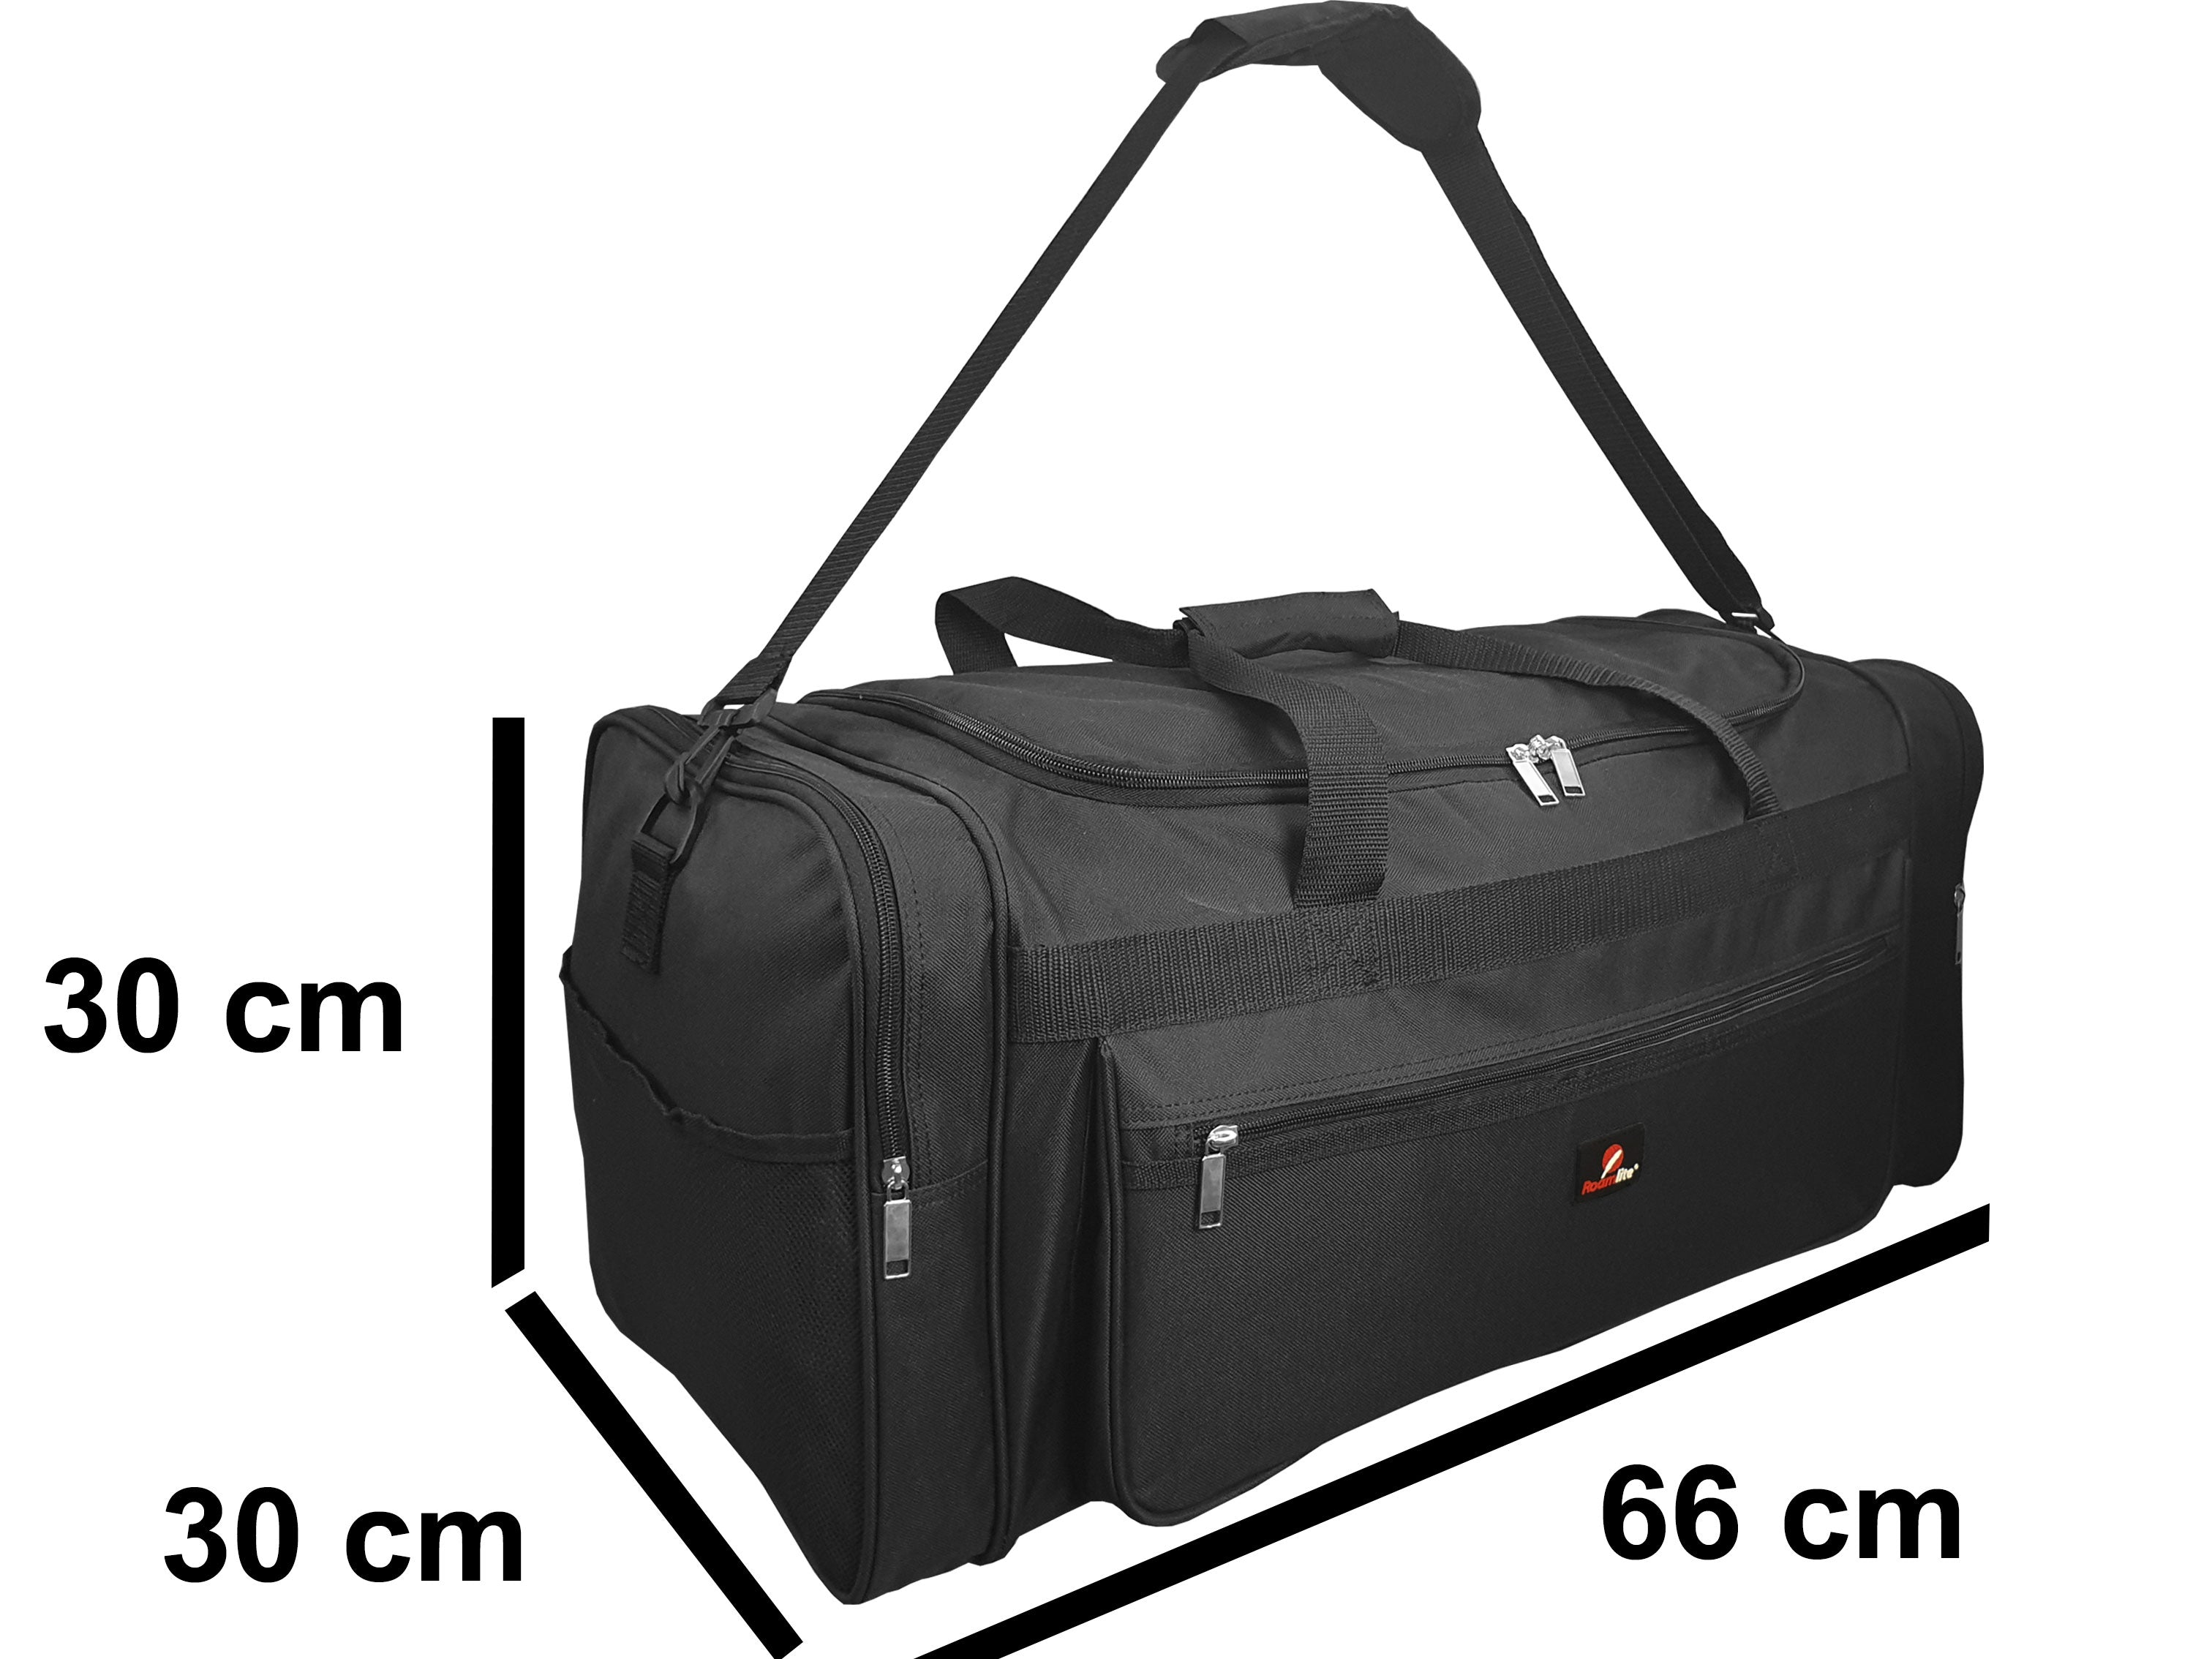 Large Size Weekend Holdall or Overnight Duffle - Ideal Gym Sports Bag